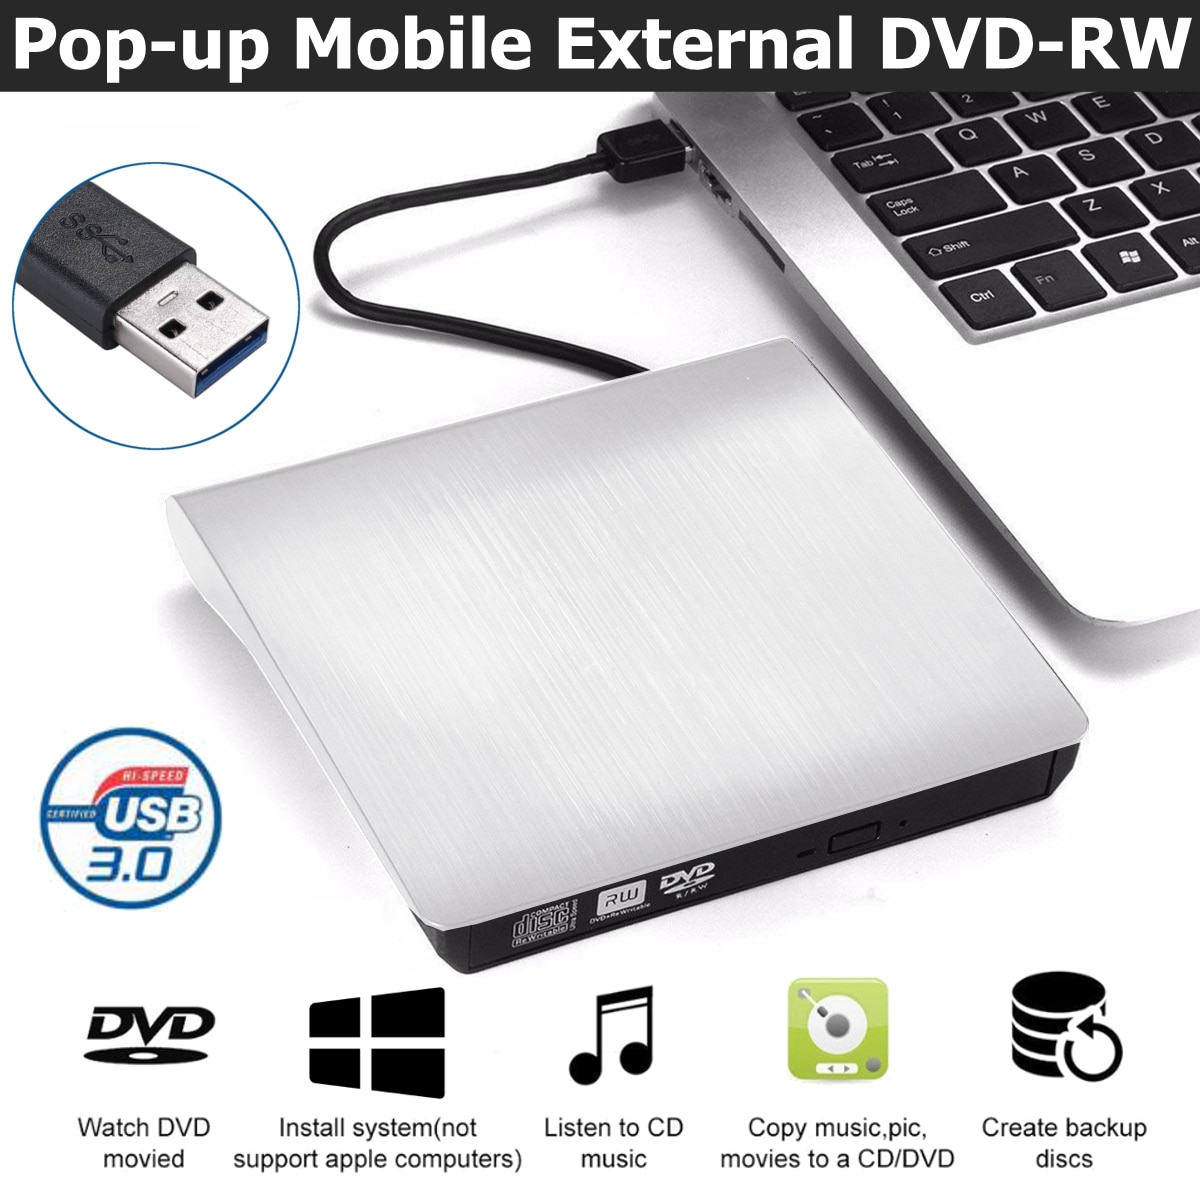 External DVD Drive USB 3.0 Portable CD DVD RW Drive Writer Burner Optical Player Compatible For Wind